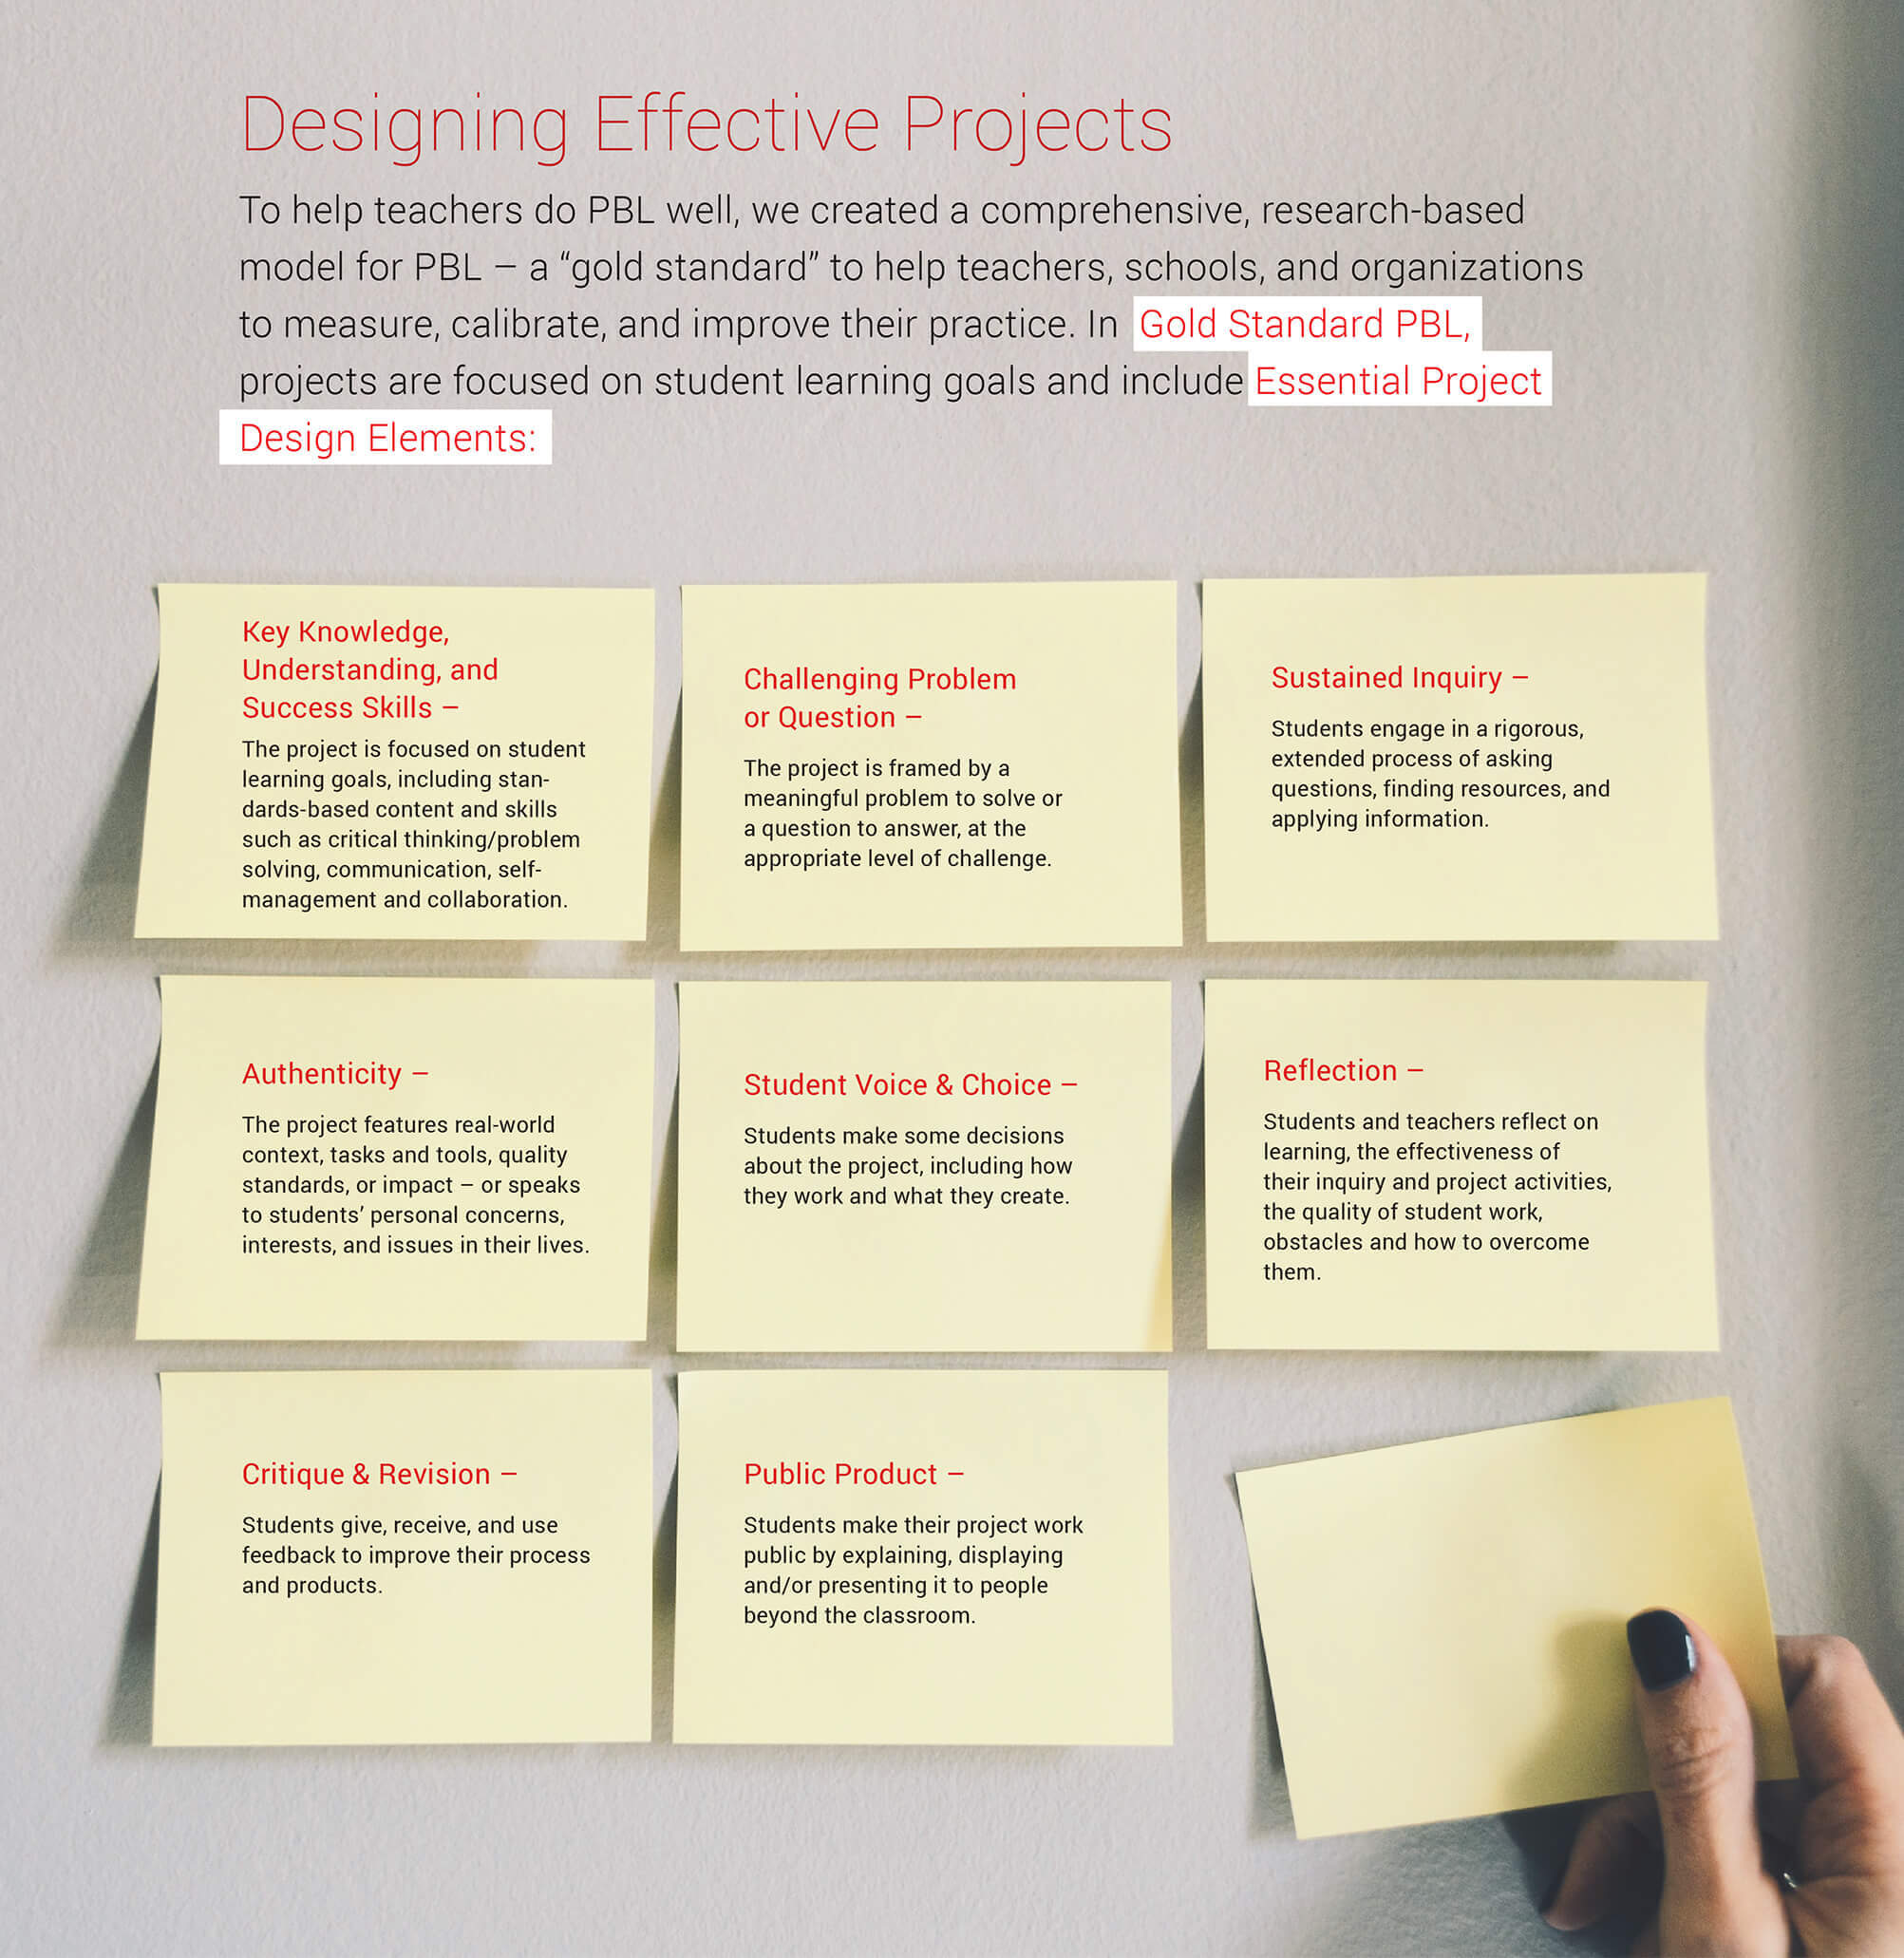 Eight Essential Project Design Elements: Key Knowledge, Understanding, and Success Skills. Challenging Problem or Question. Sustained Inquiry. Authenticity. Student Voice and Choice. Reflection. Critique and Revision. Public Product.